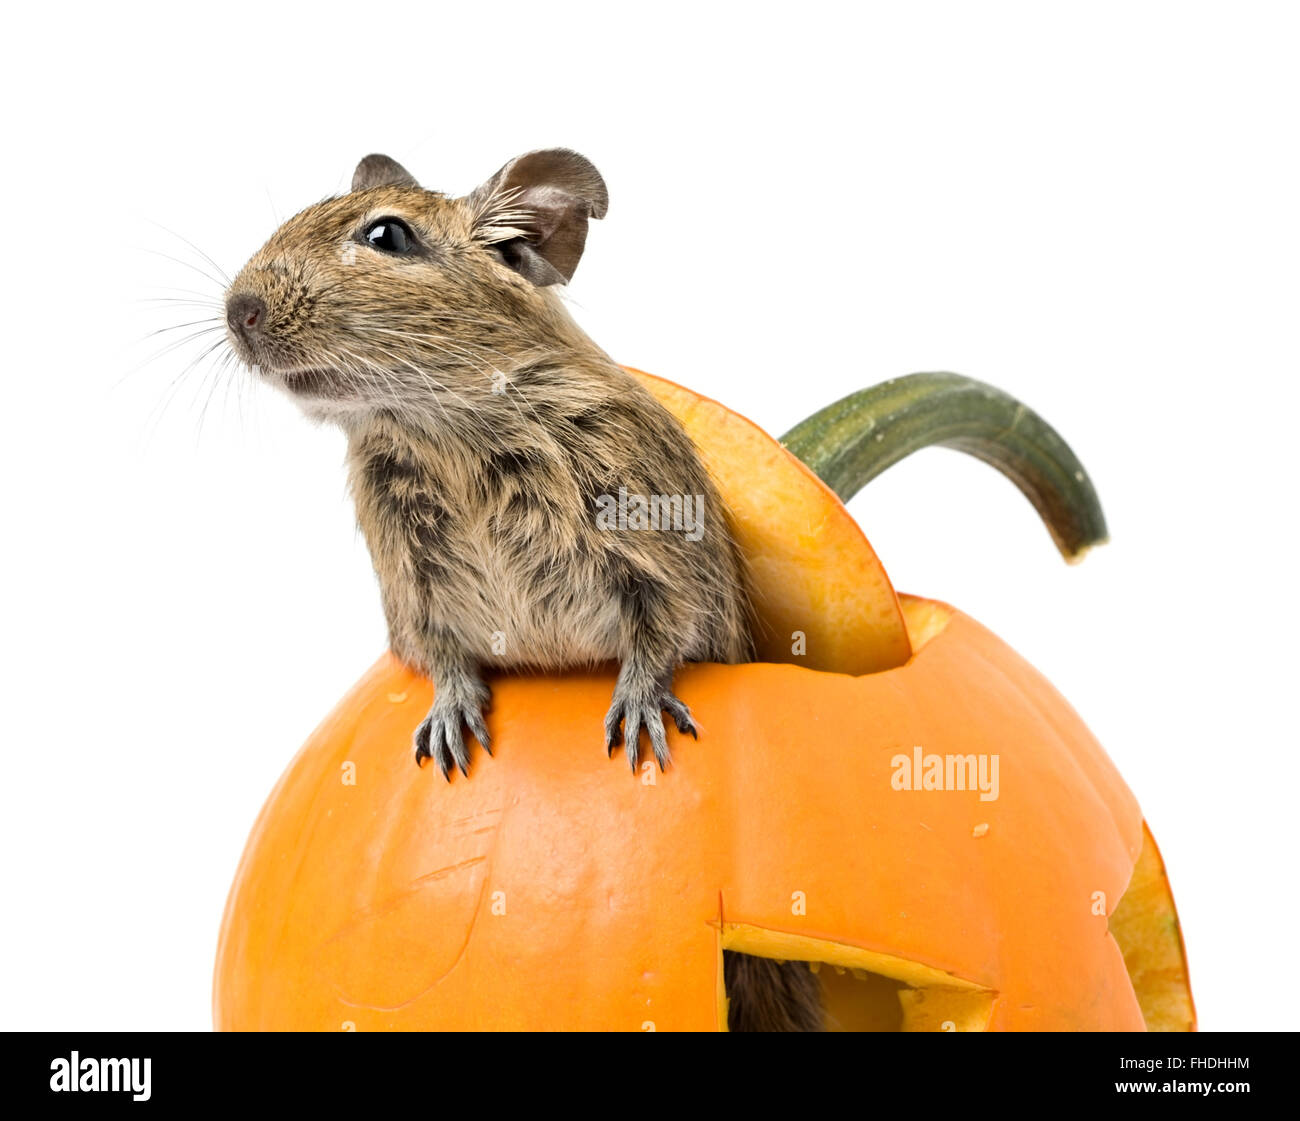 Halloween pumpkin with funny mouse inside isolated on white - Stock Image